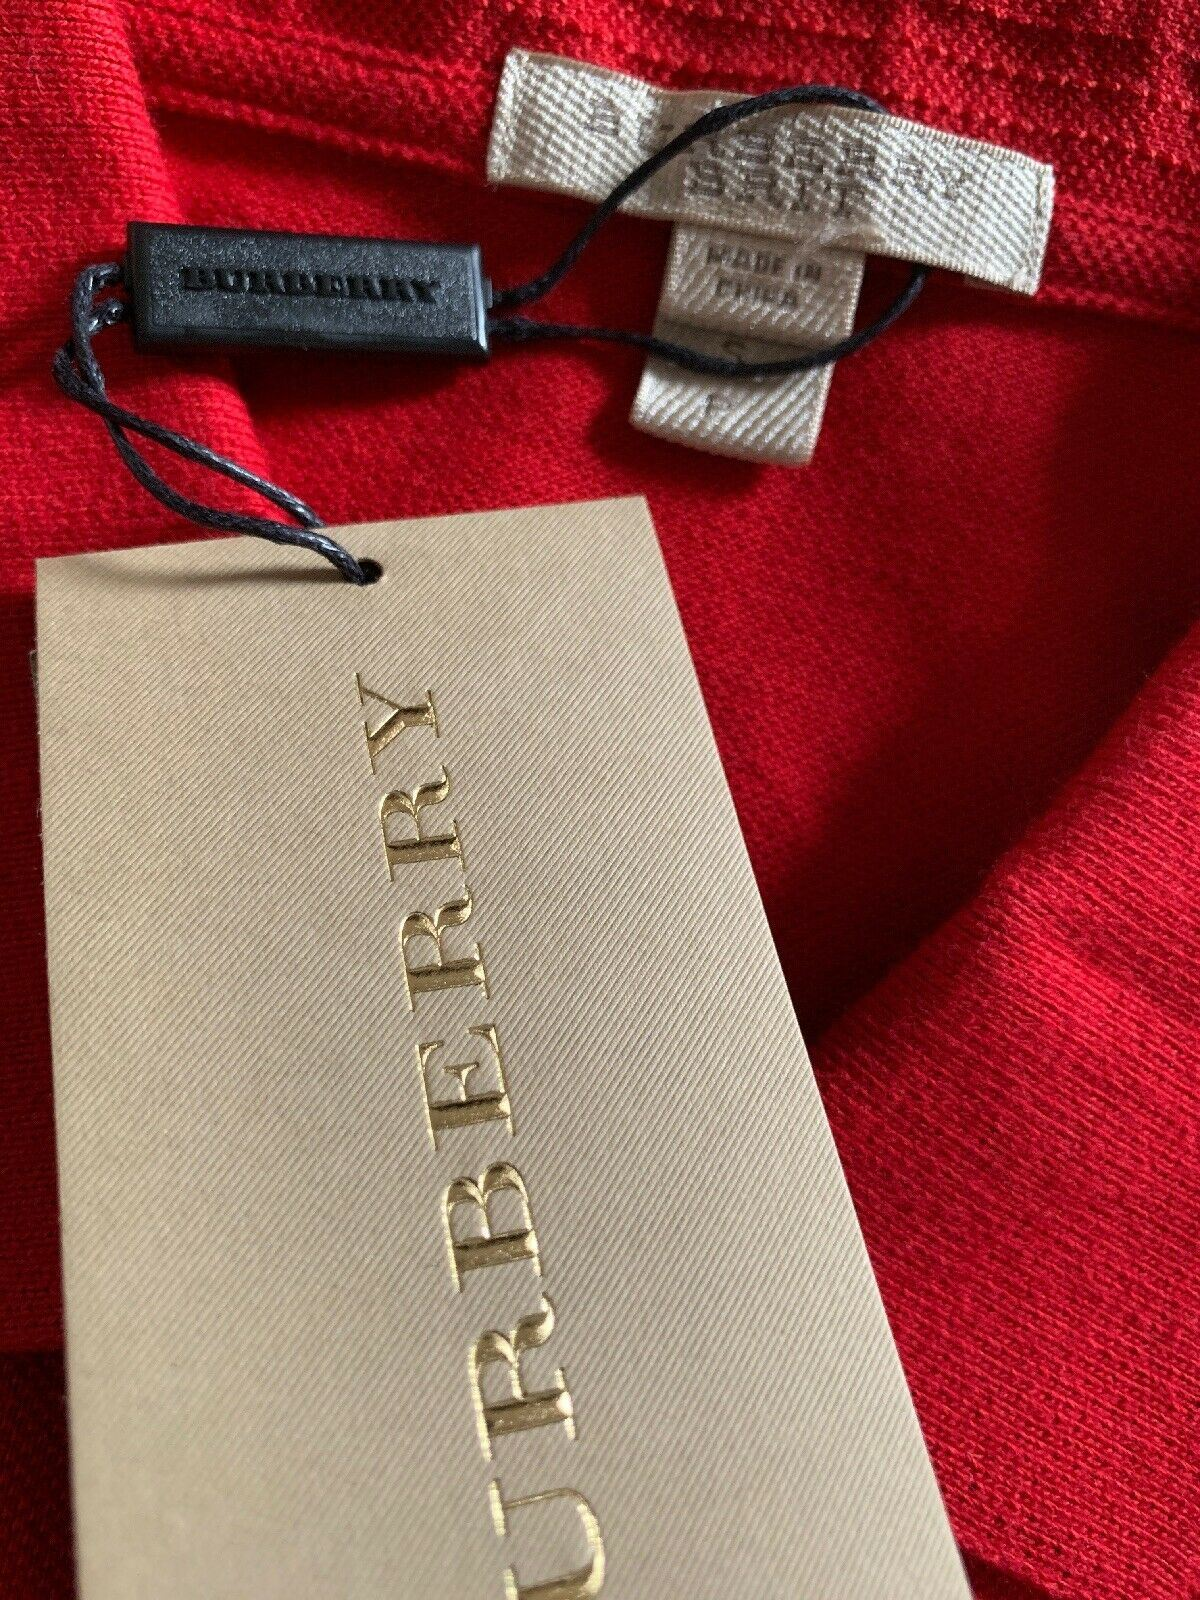 NWT $250 Burberry Brit Mens Polo Shirt Red Size S US